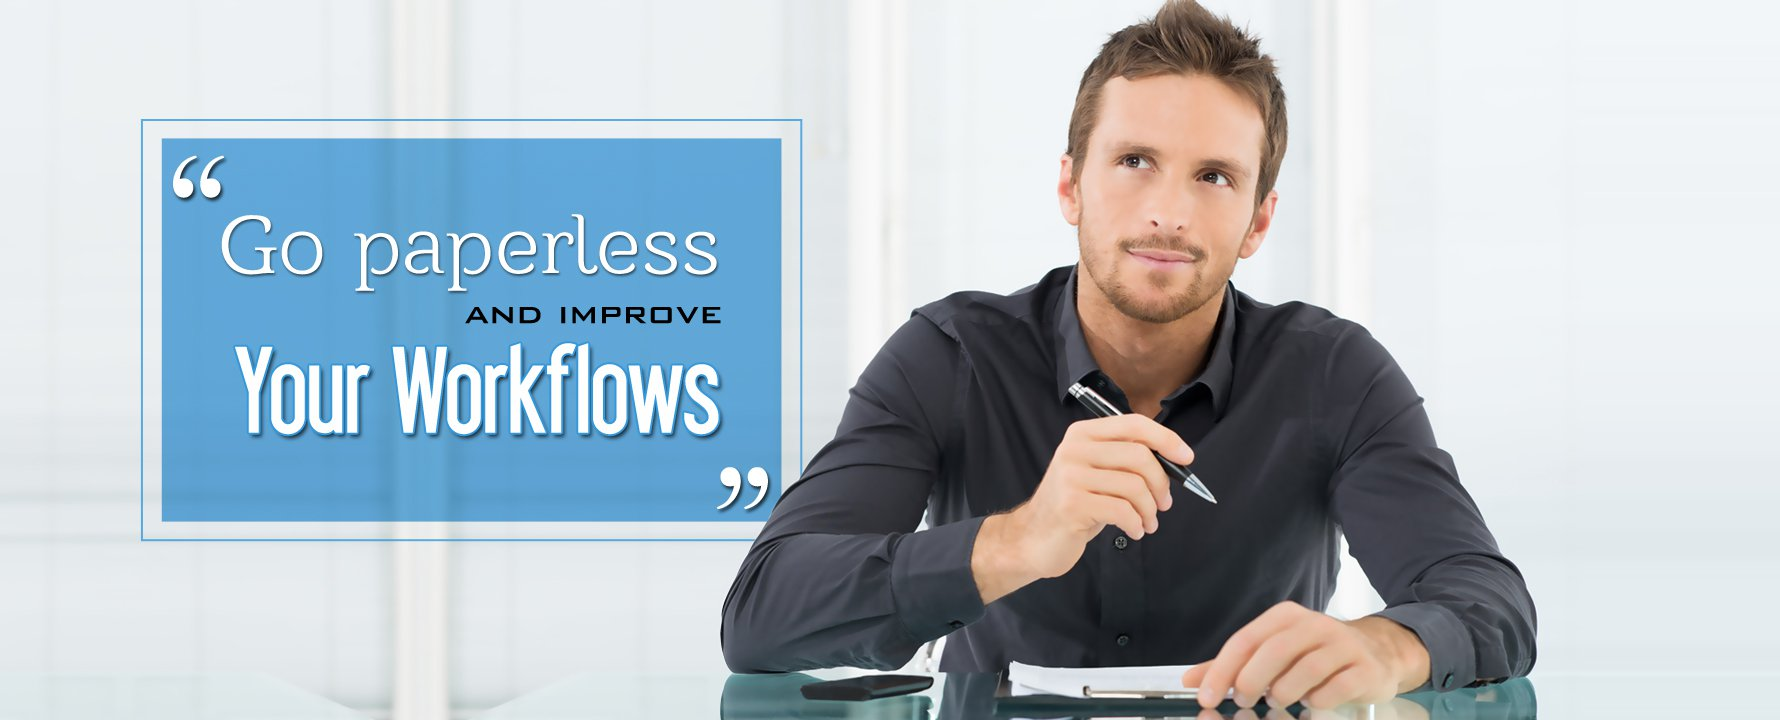 Go paperless and improve your workflows